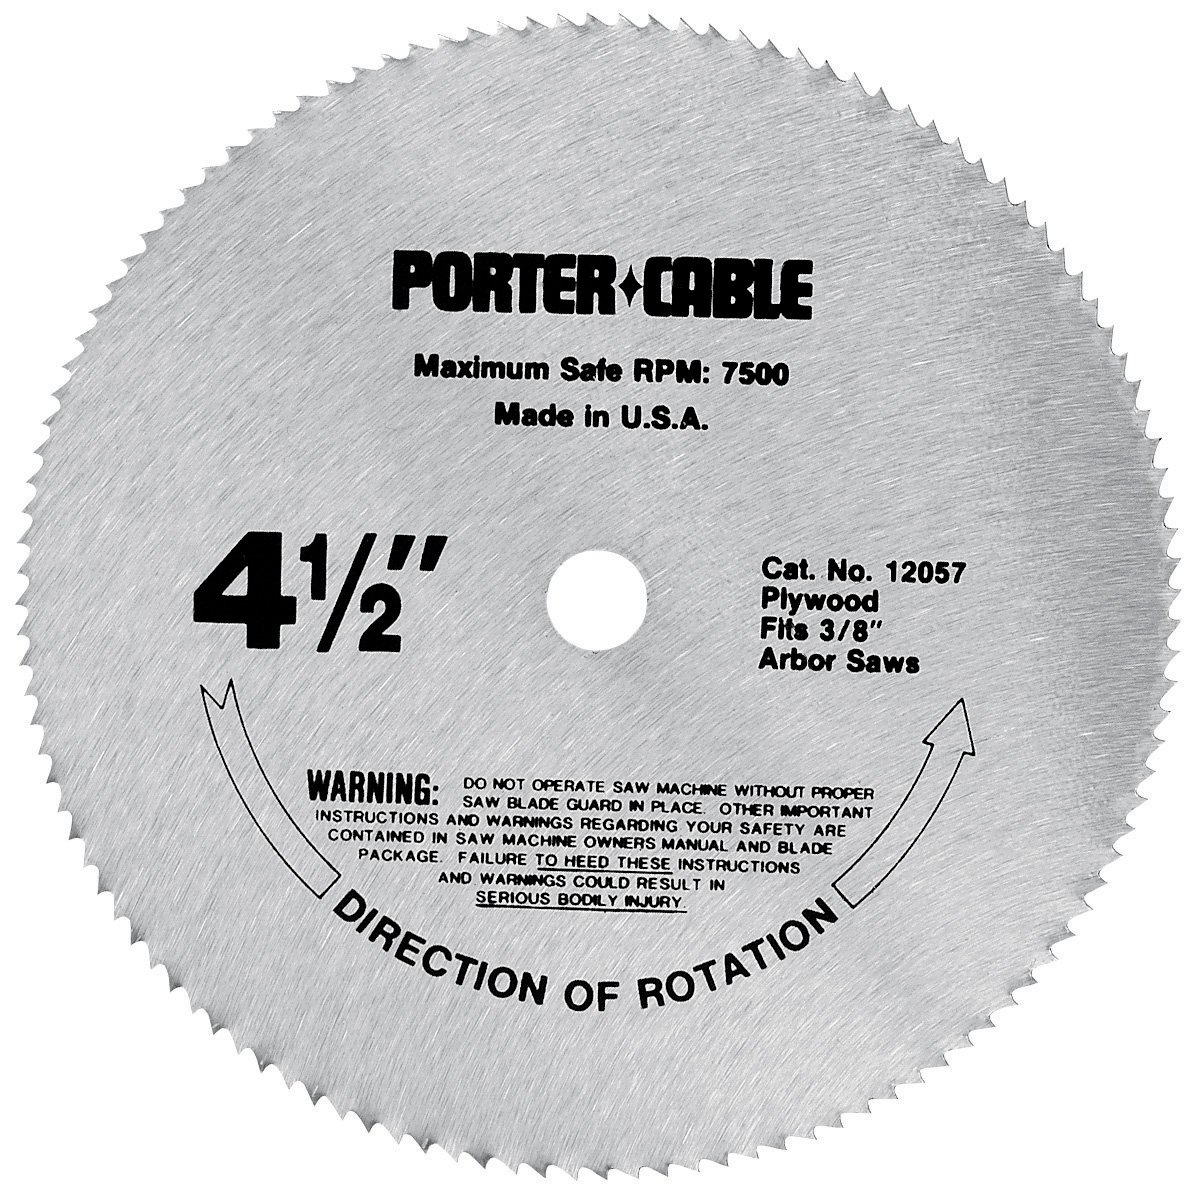 Porter cable 12057 4 12 inch 120 tooth tcg plywood cutting saw porter cable 12057 4 12 inch 120 tooth tcg plywood cutting saw blade with 38 inch arbor porter cable saw blades amazon keyboard keysfo Choice Image